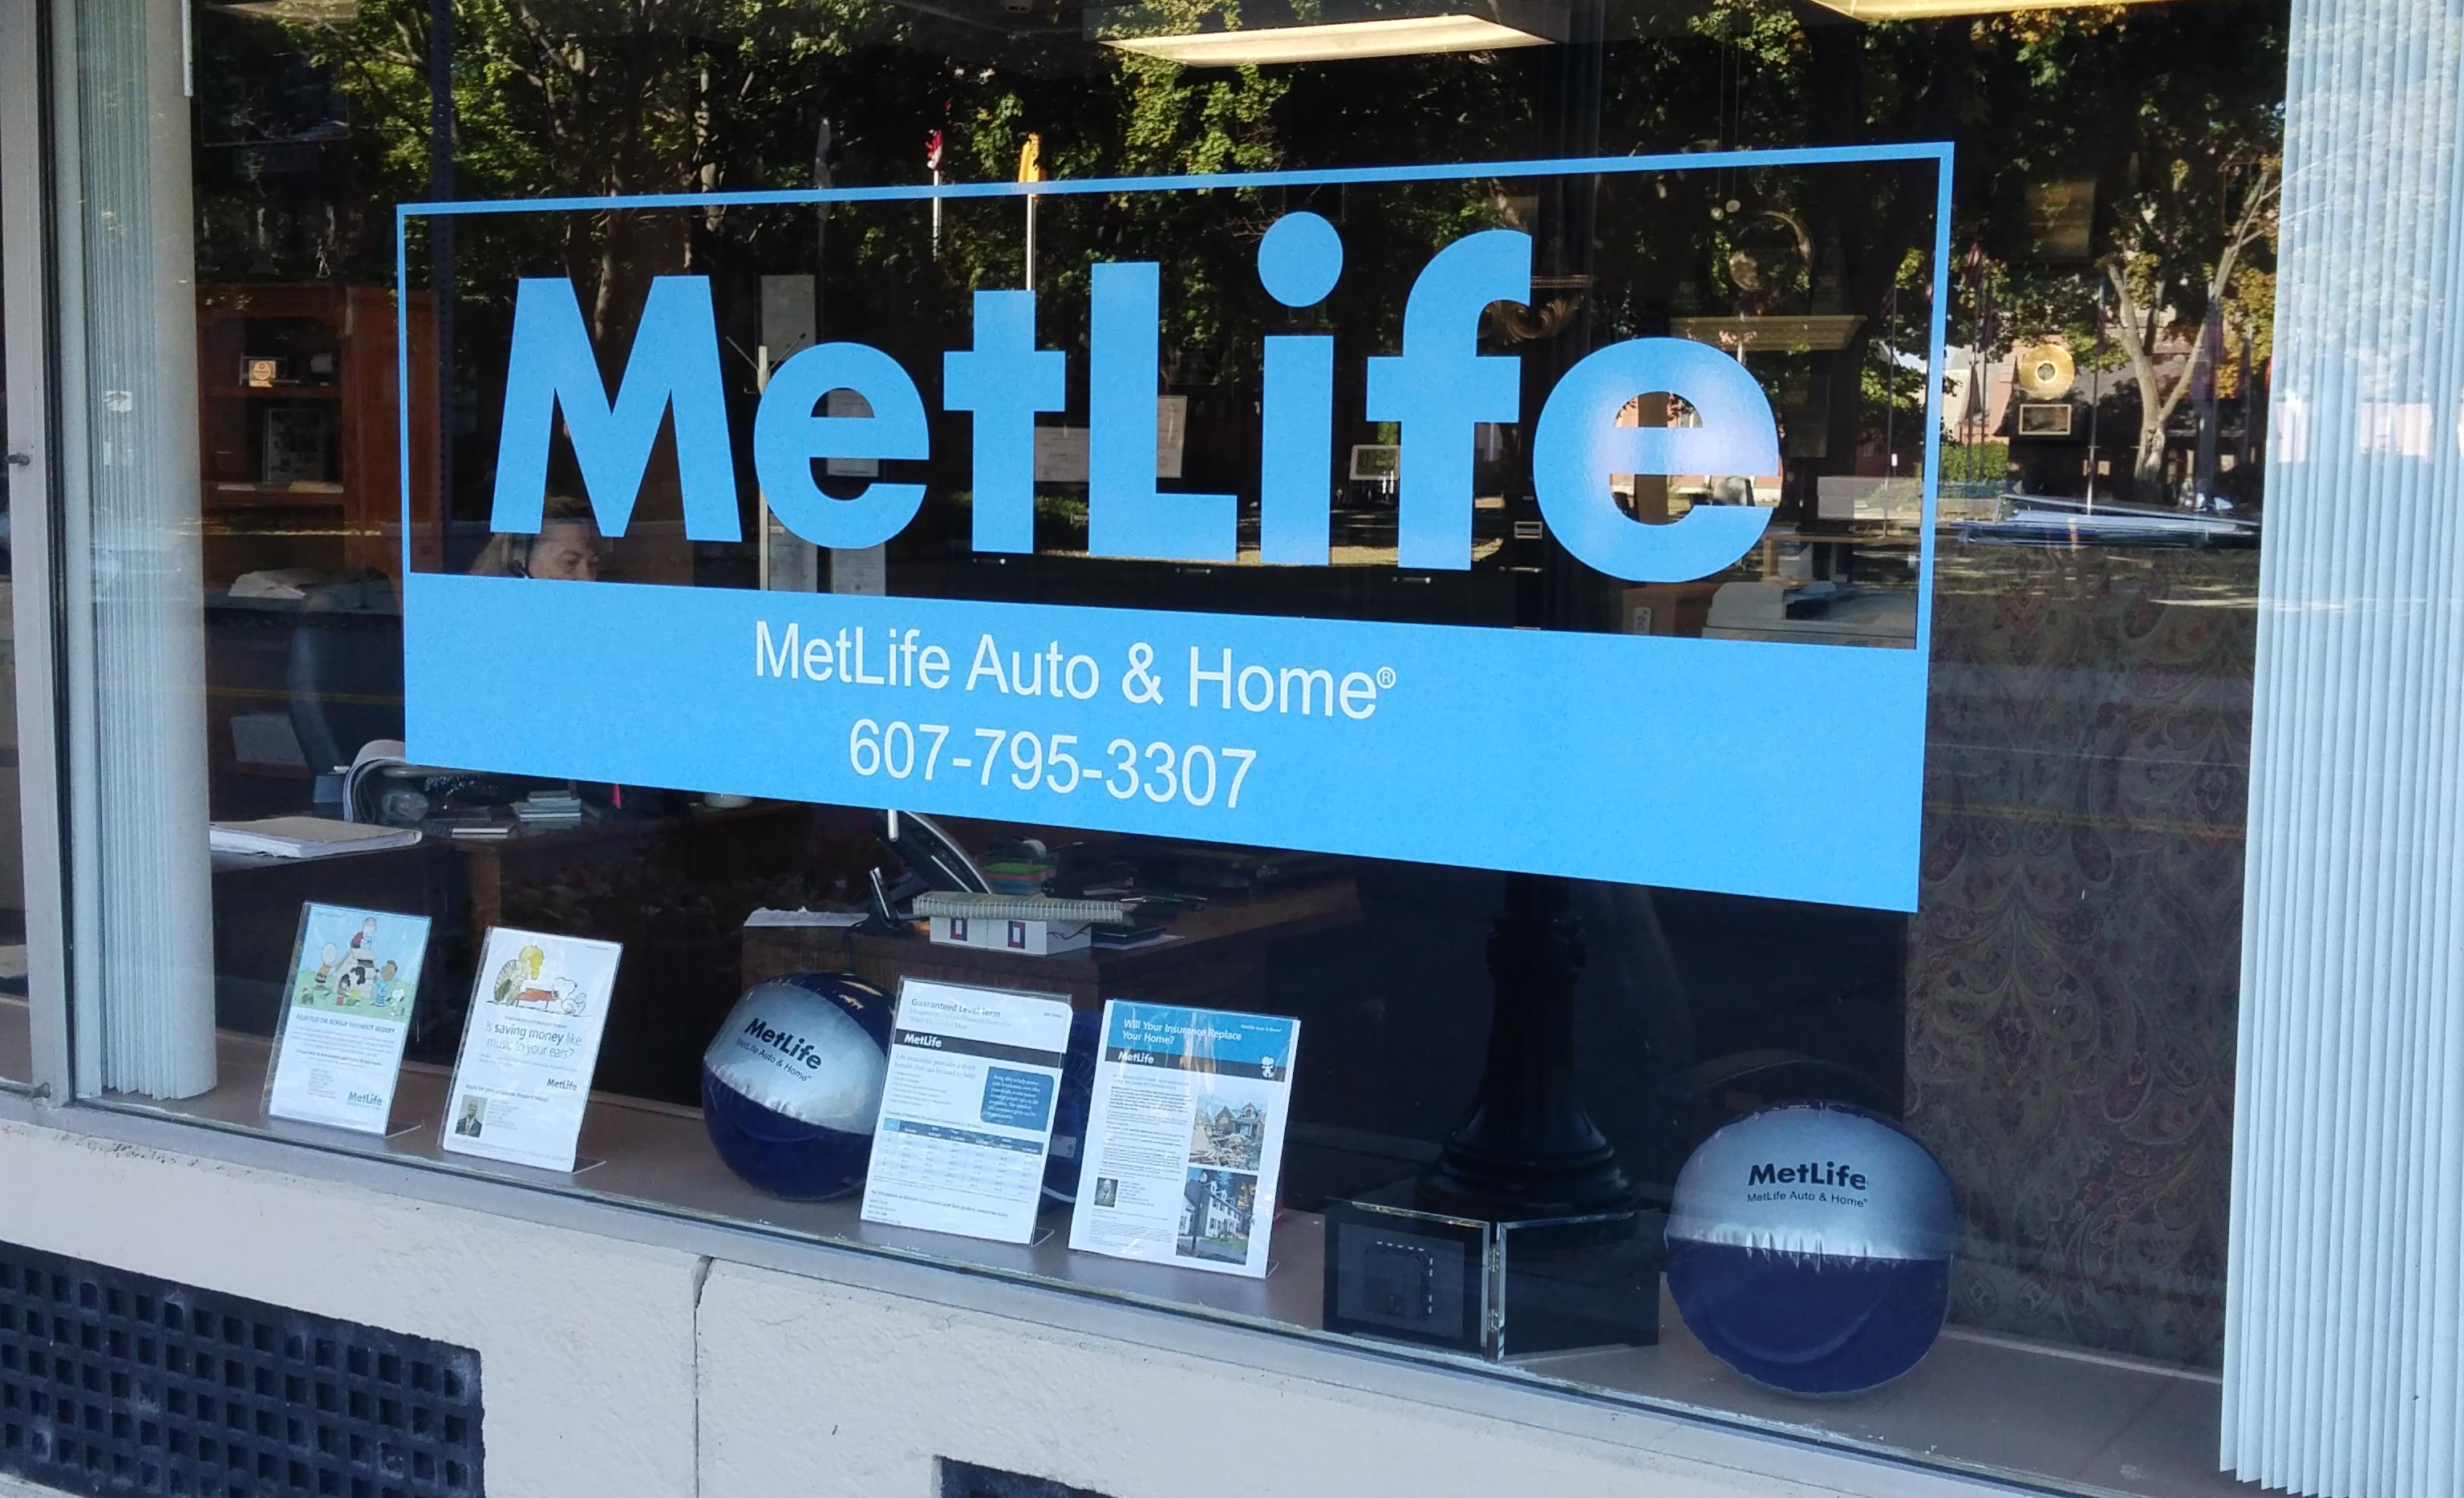 Met Life Auto Insurance Quote Robert Conrad  Auto Home And Life Insurance Agent L Metlife Auto